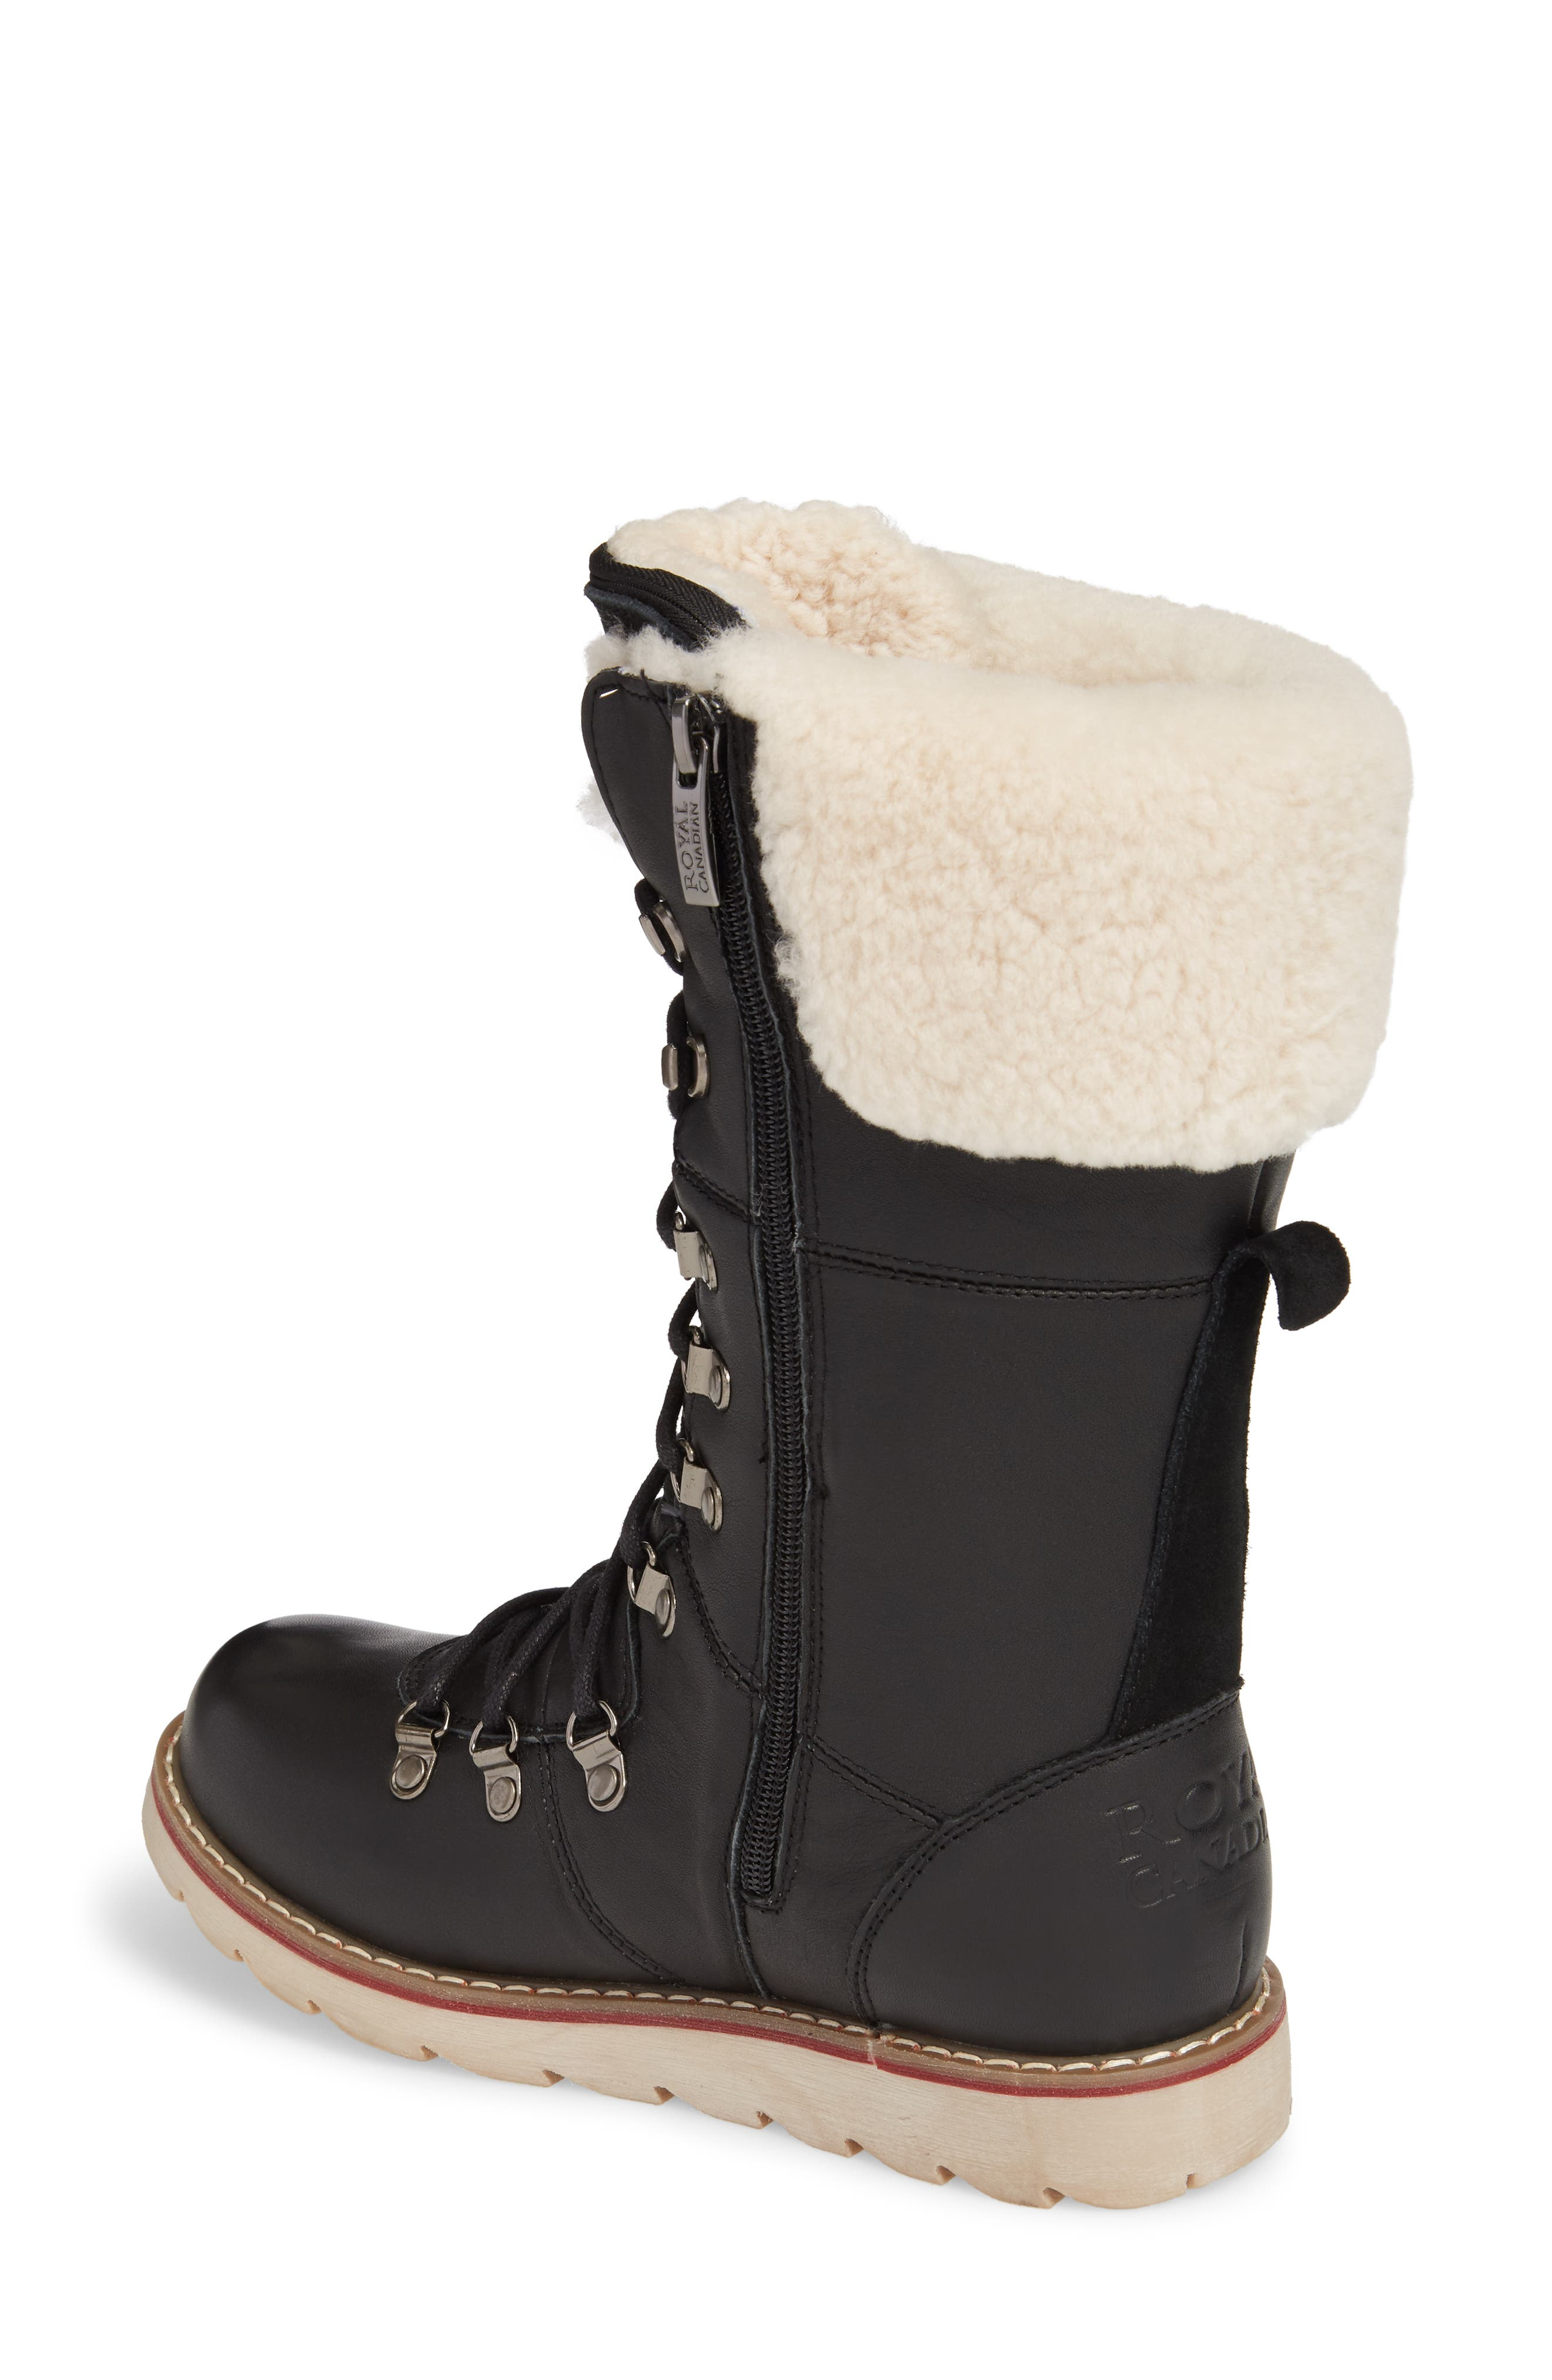 Louise Waterproof Snow Boot with Genuine Shearling Cuff,                             Alternate thumbnail 2, color,                             001